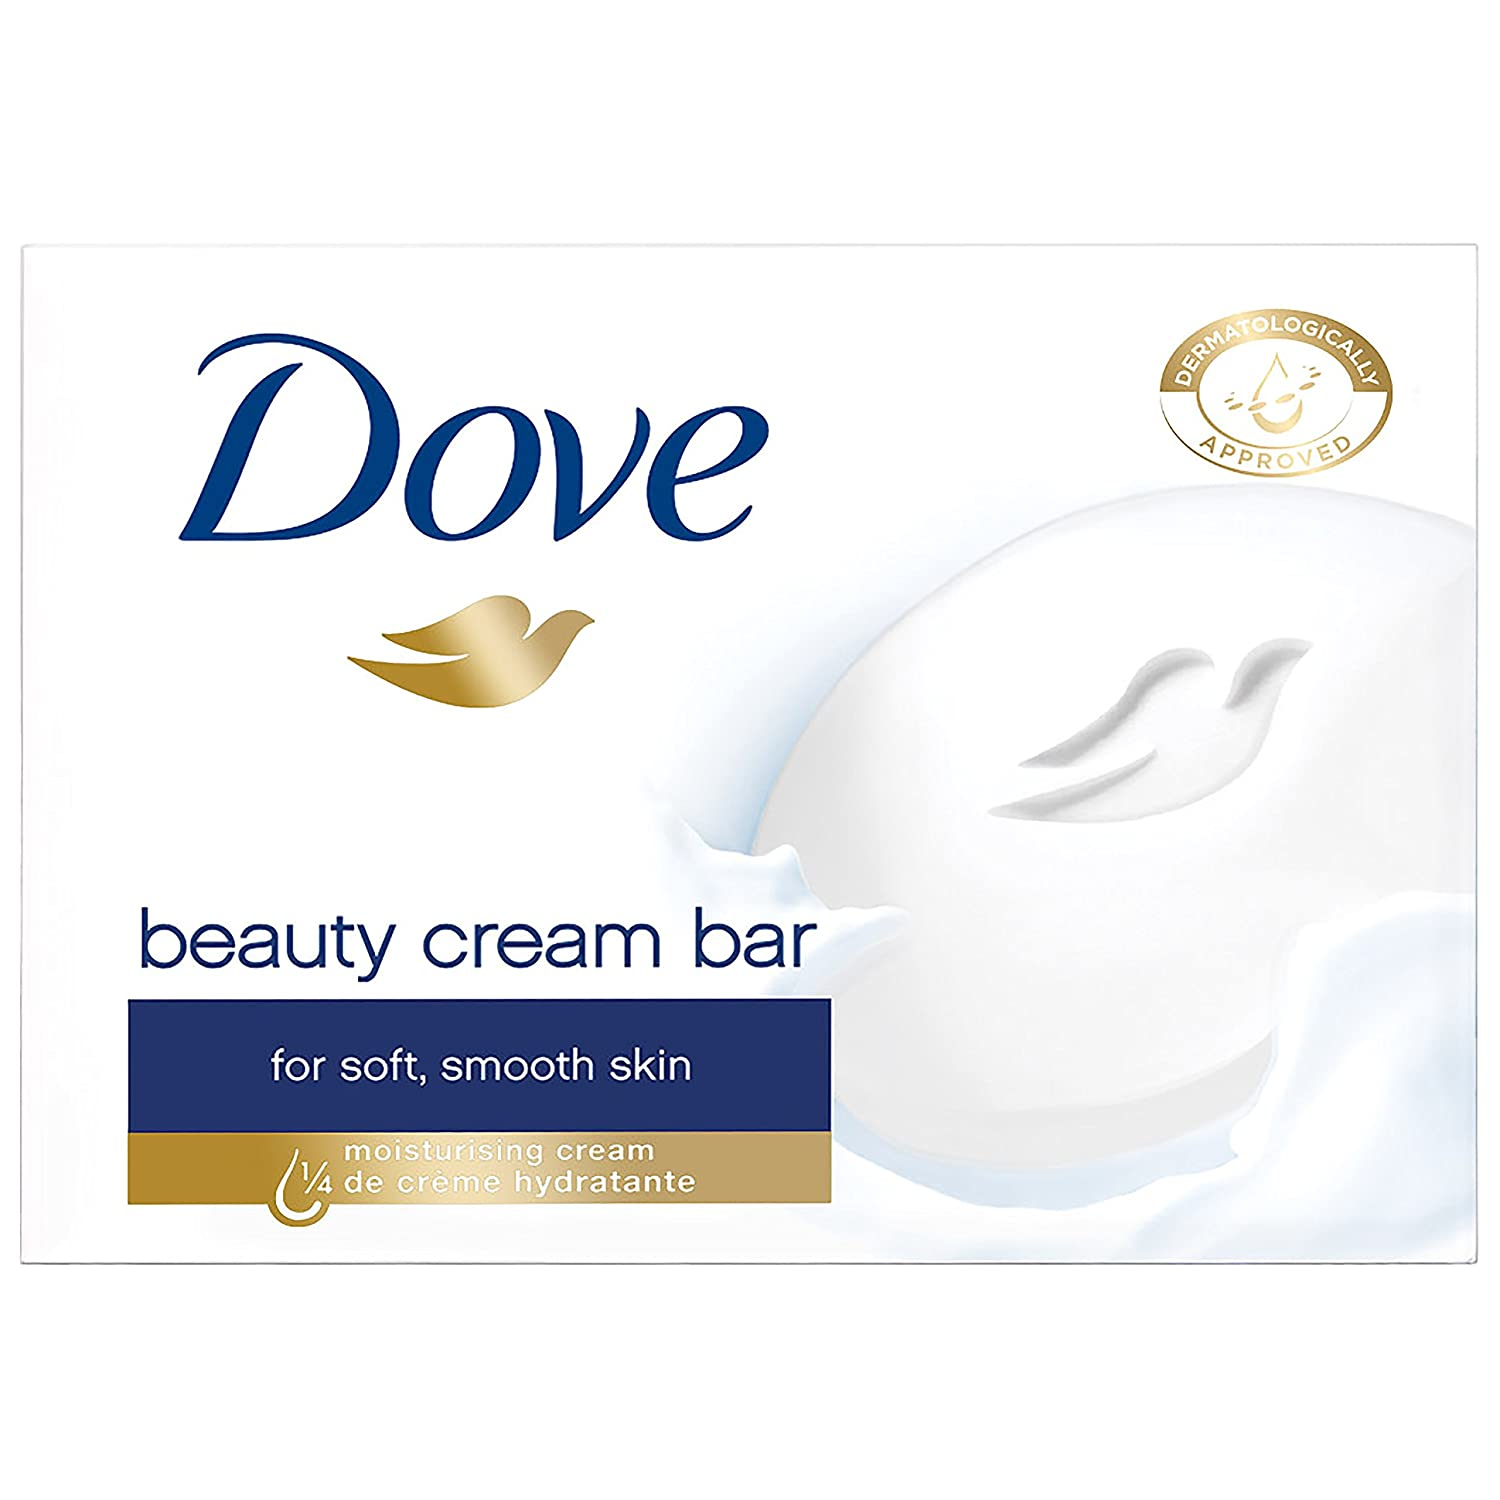 Dove Original Beauty Cream Bar 4 x 100 g - Pack of 6 (24 Bars) Unilever 586735